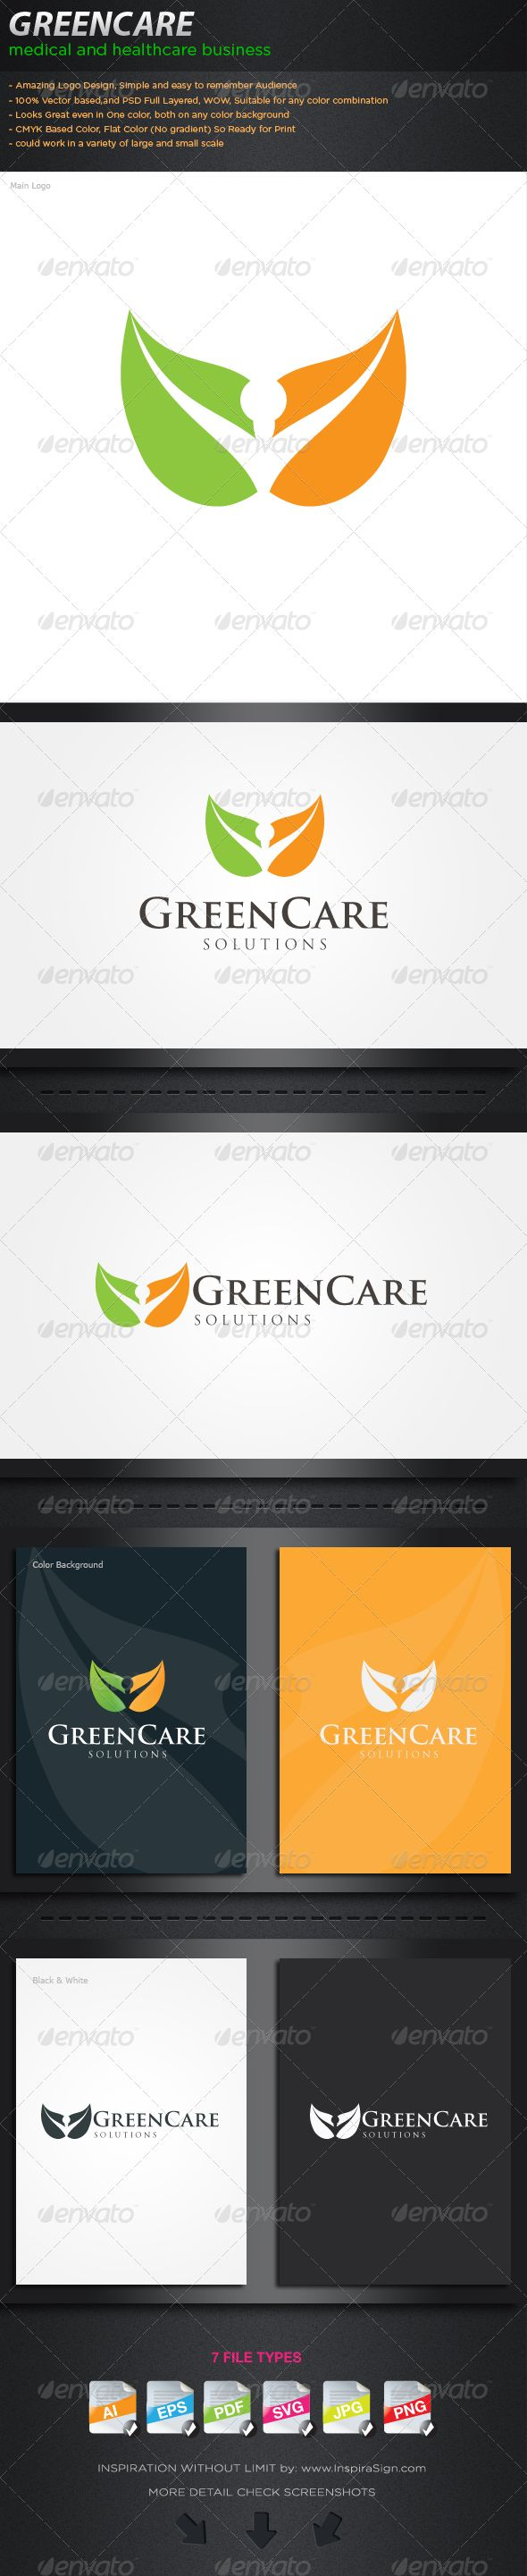 GreenCare - Profesional Logo For Your Green Compan  #GraphicRiver         Logo:  	 This brand is suitable for every kind of business sector.Name, color…etc changes can be done according to your desire.  	 Best suited for: Health company, Green Company, art, accounting firms, technology, community, association, profesional company travel, related products and services,creative design studios, IT companies, media corporations, science meetings and gatherings, web hosting companies, personal…